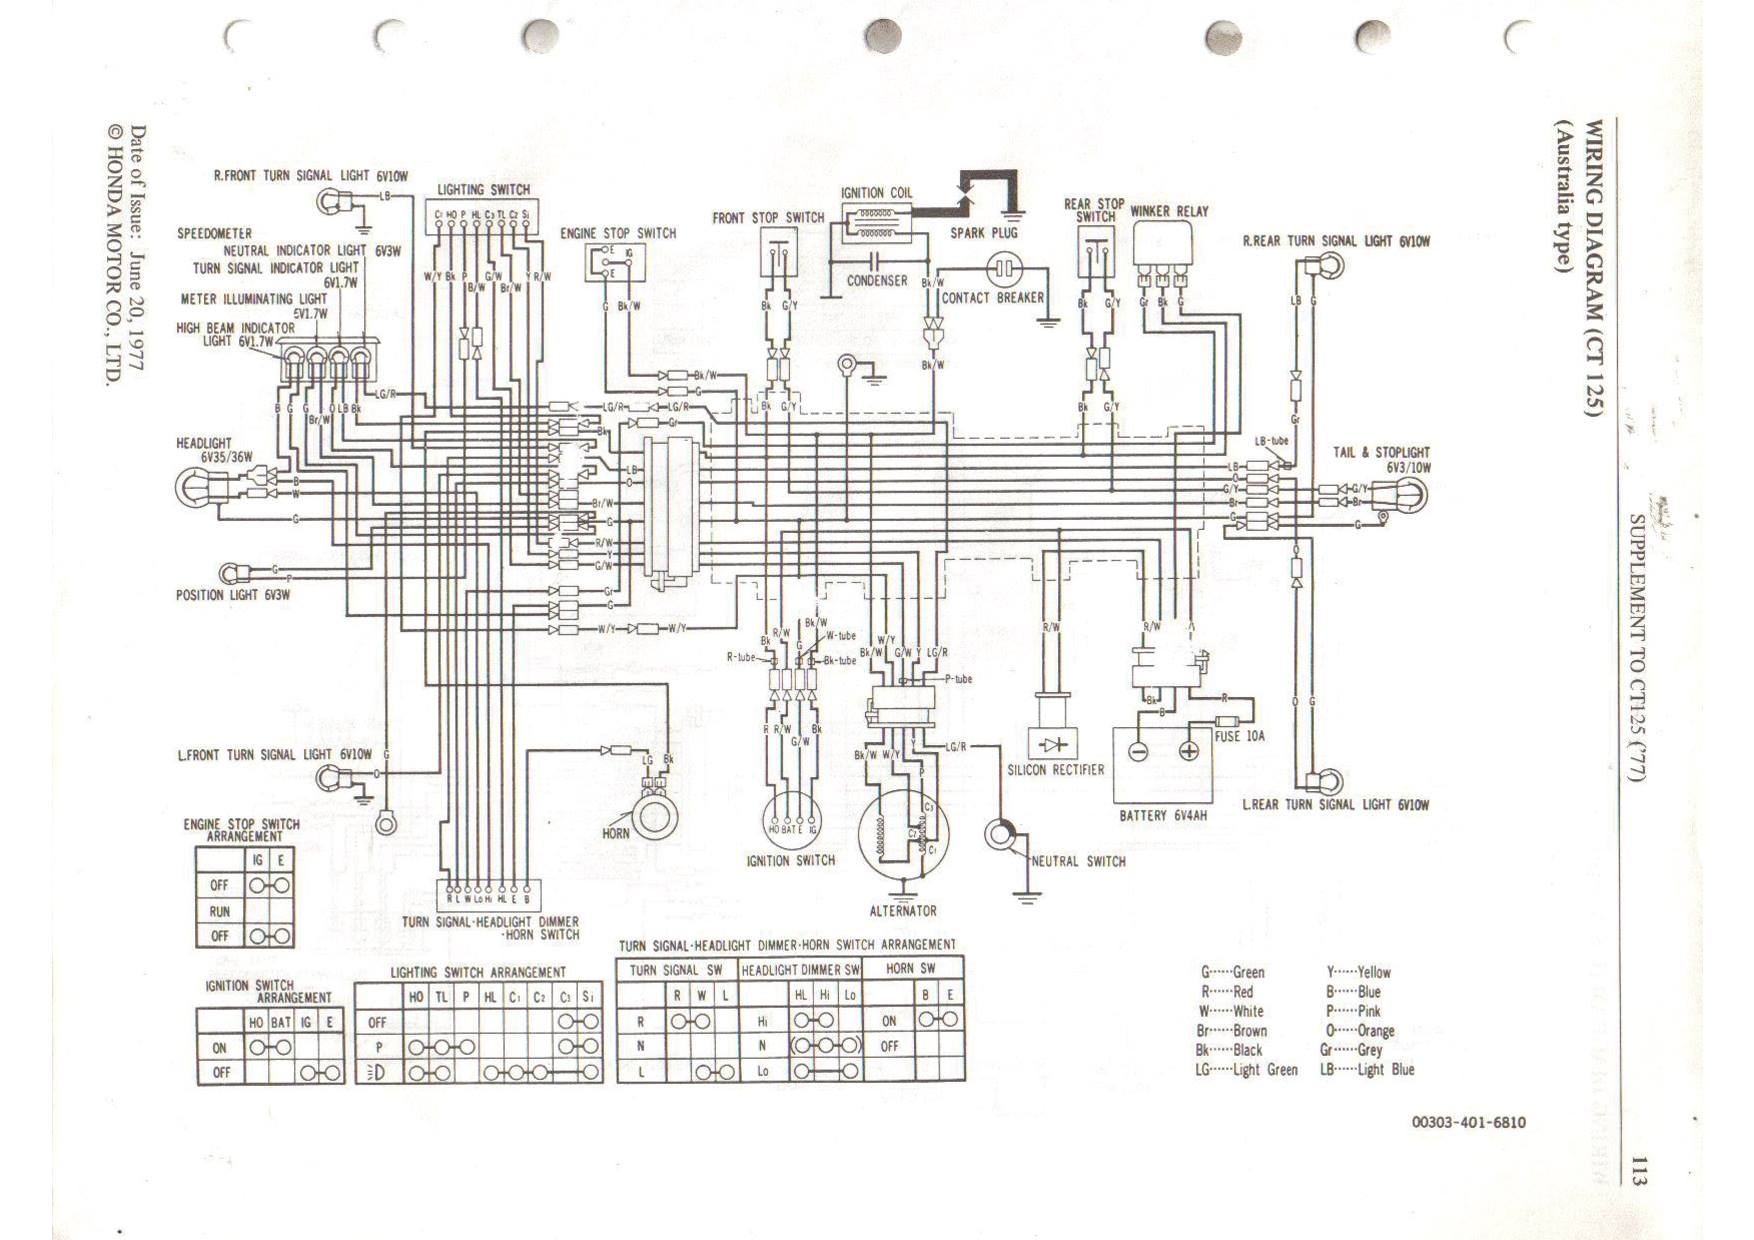 The 1977 Honda CT125 wiring diagram... Simple as far as motorcycle wiring  goes